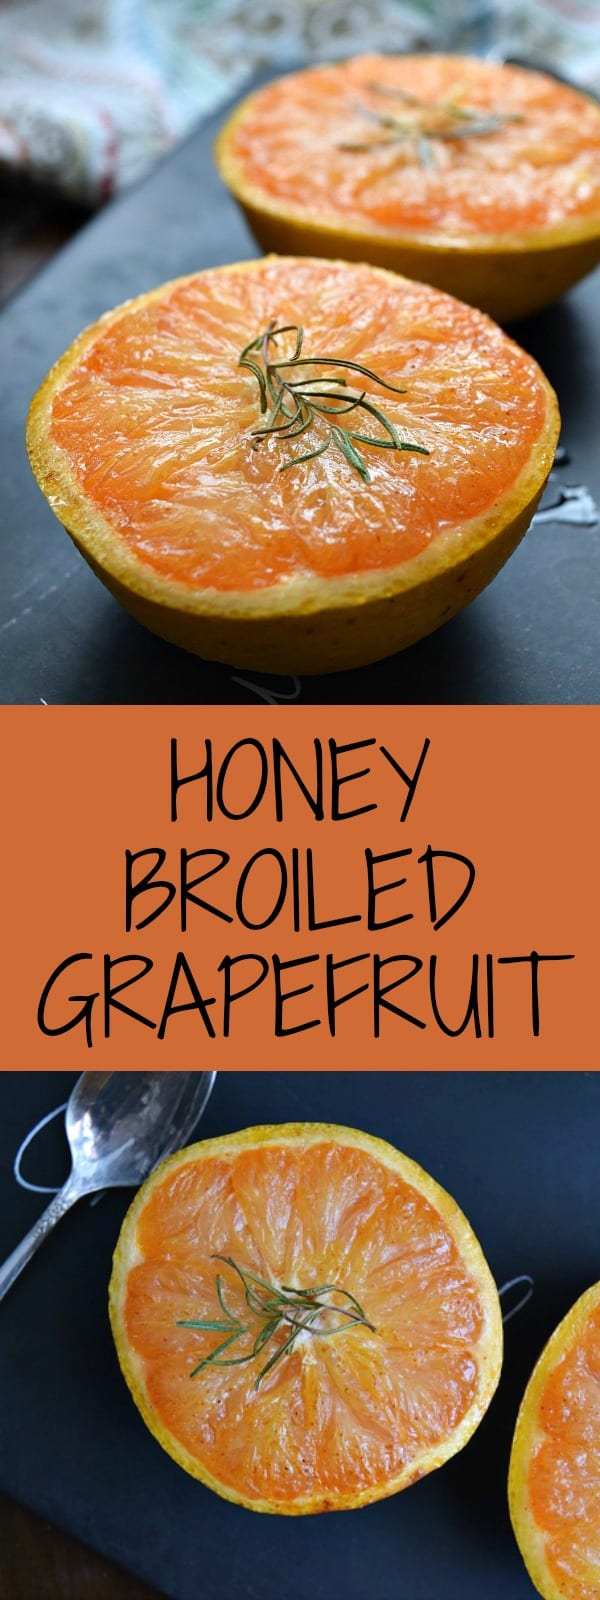 Honey Broiled Grapefruit is a delightfully extra juicy and flavorful snack or breakfast made by broiling it in the oven with honey & spices